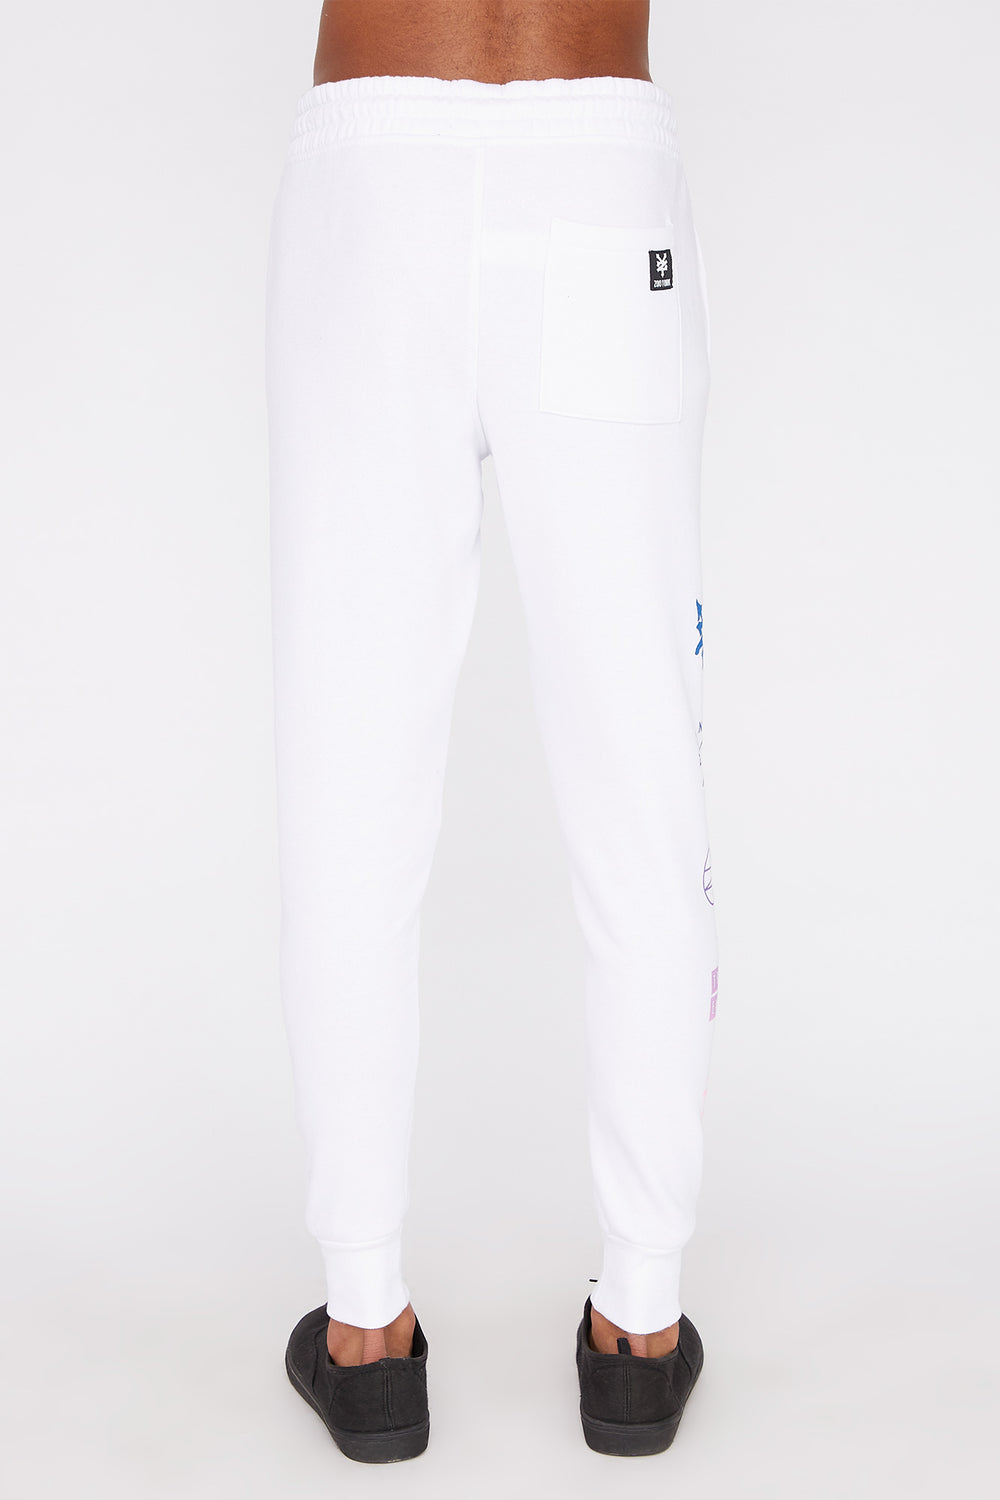 Jogger Logos Gradients Zoo York Homme Blanc